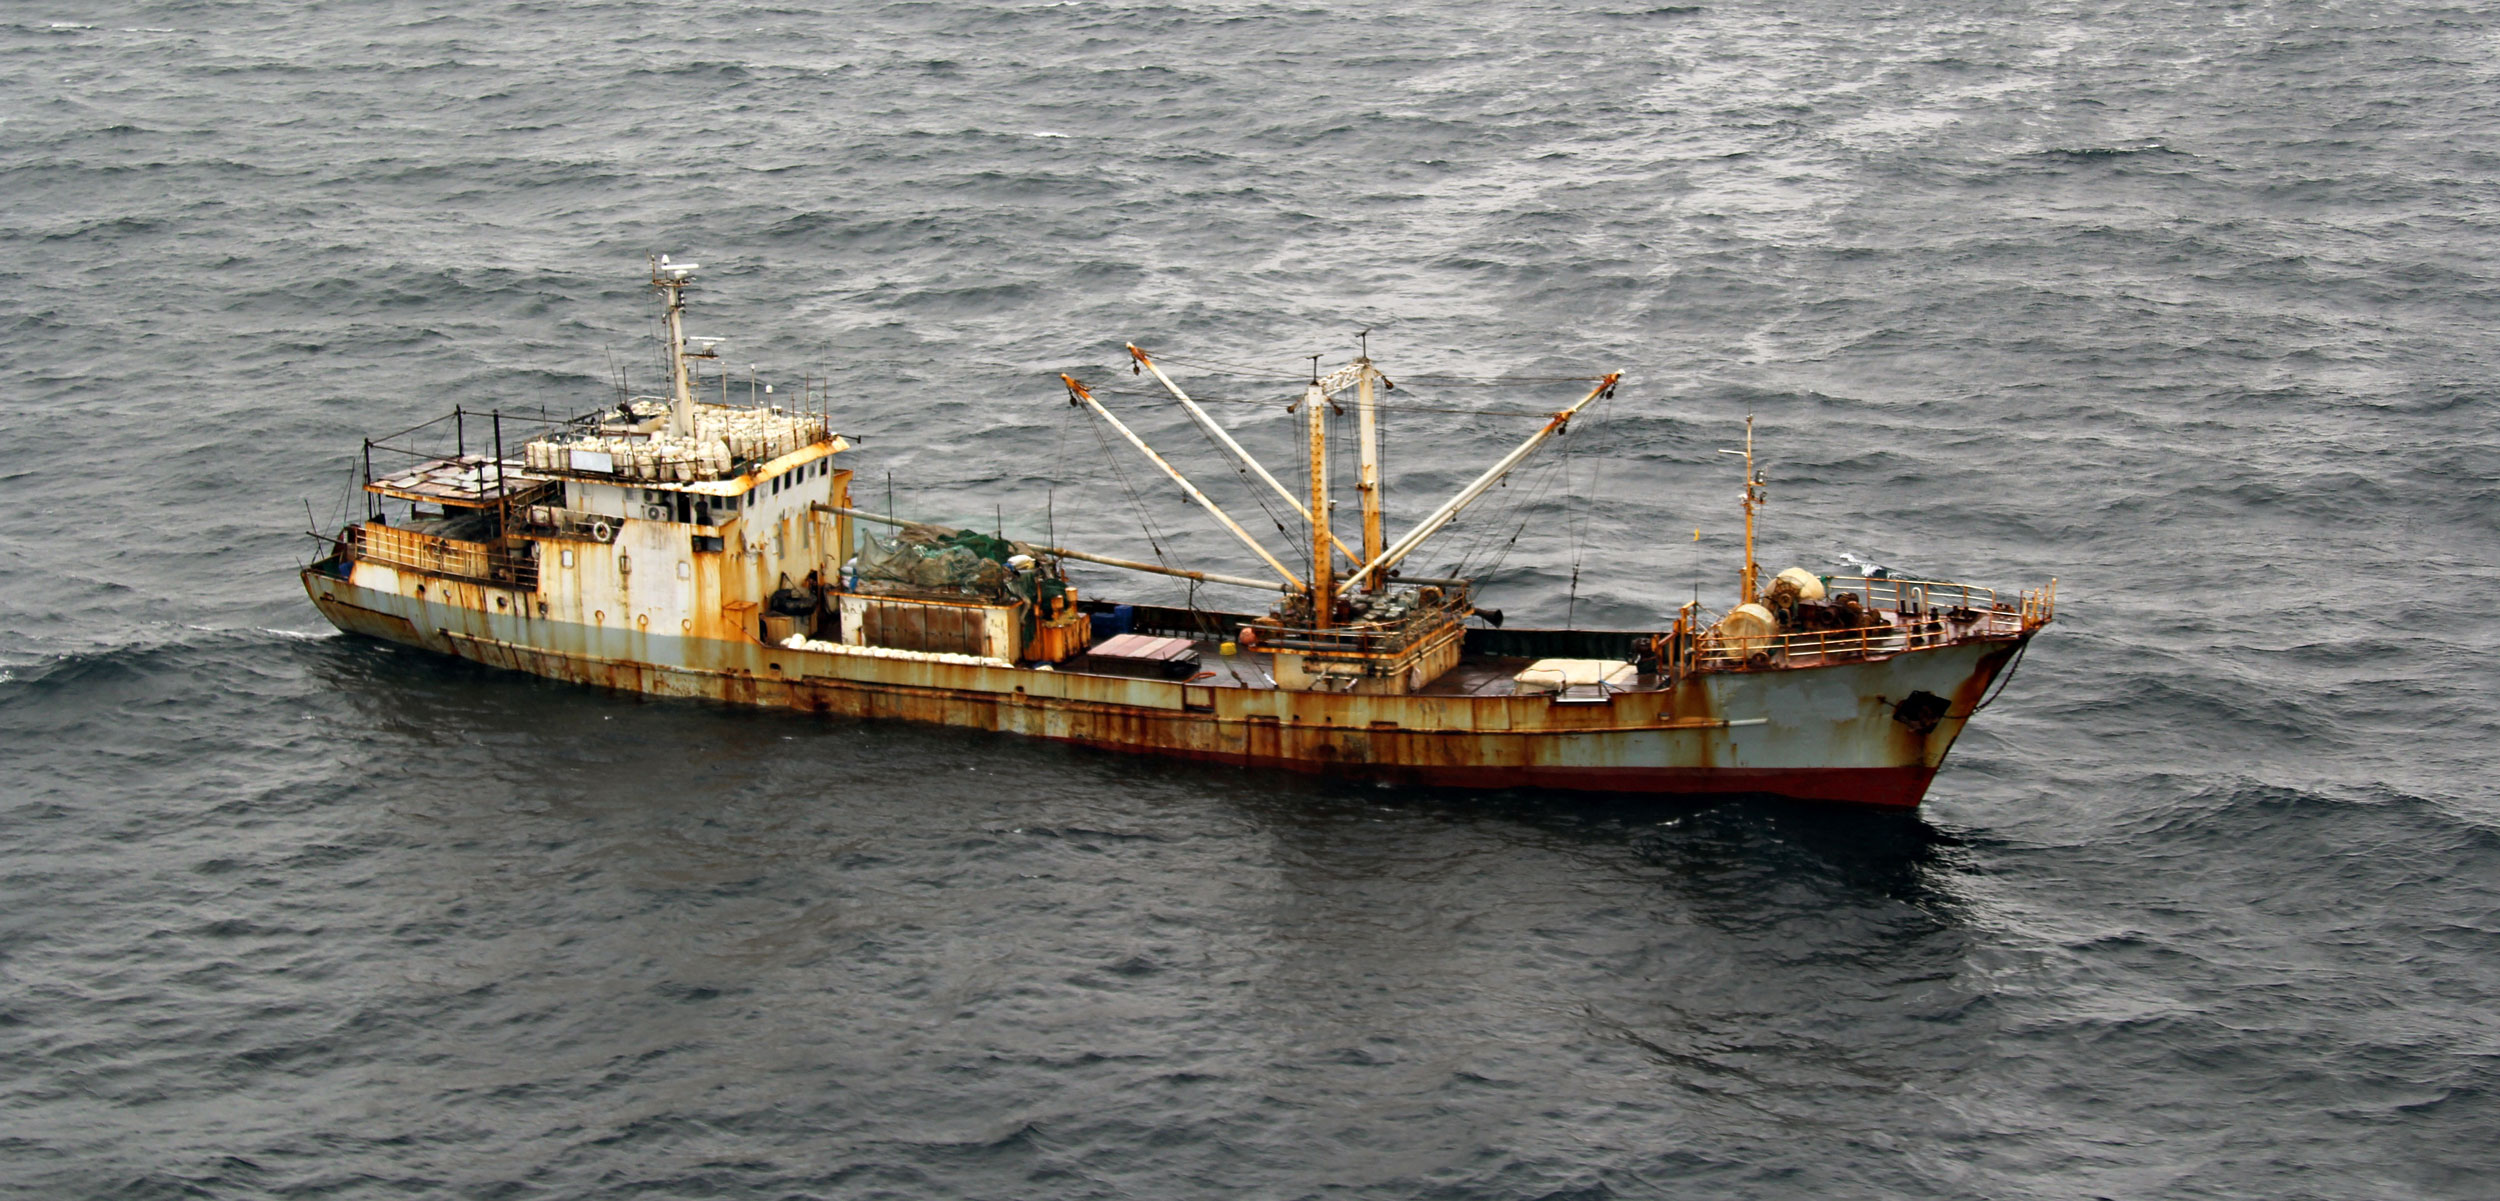 a Chinese fishing vessel